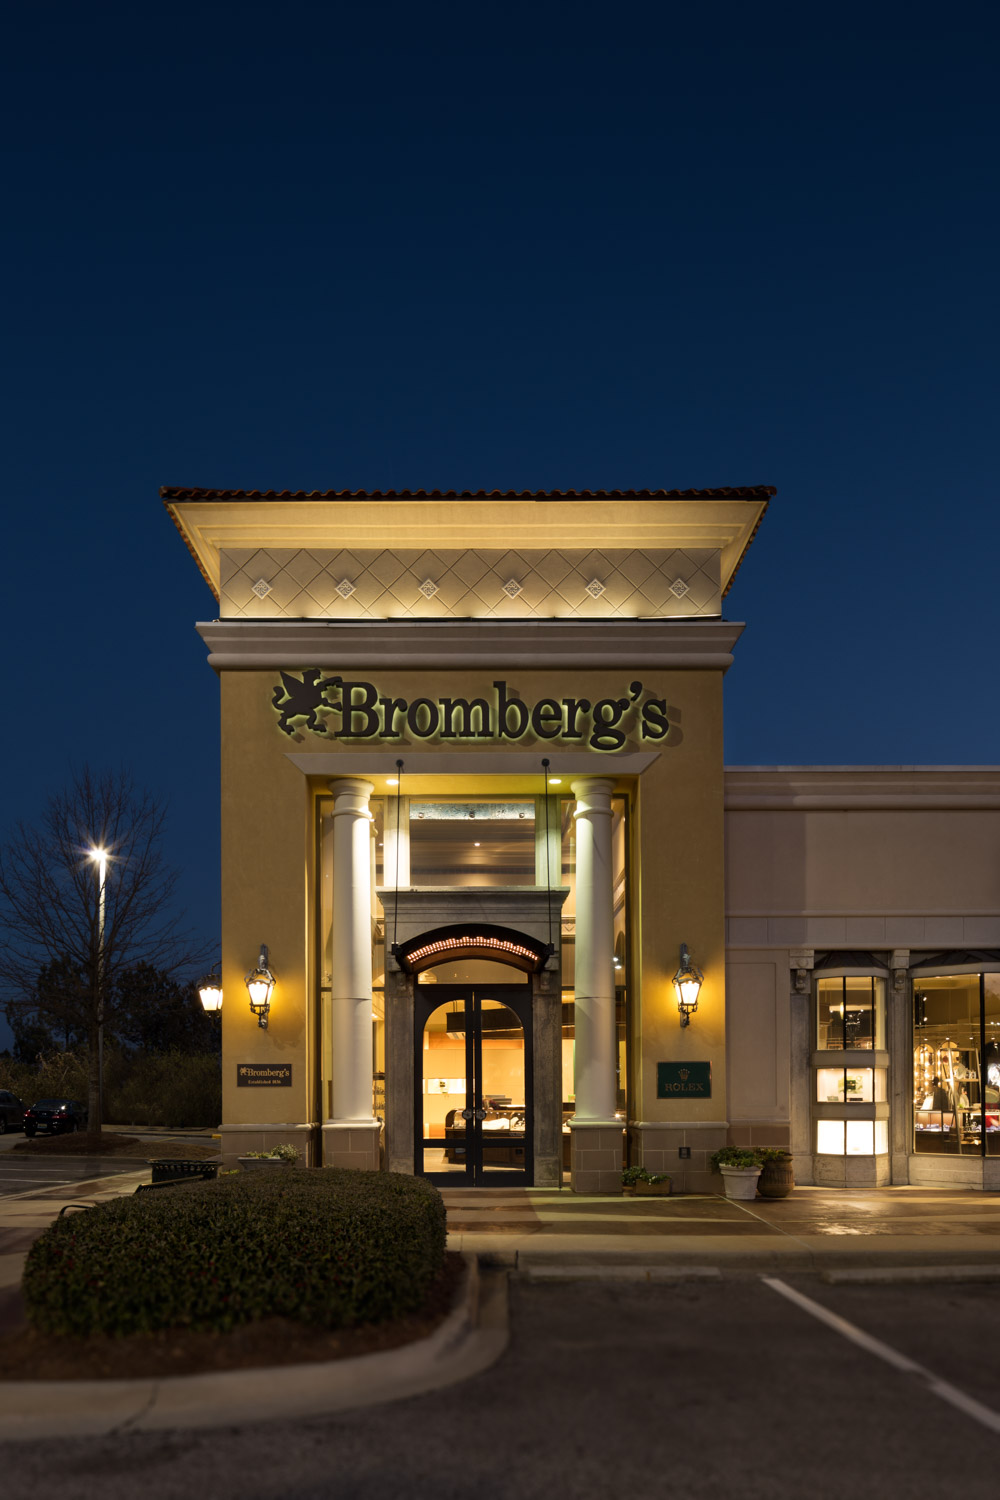 Brombergs - Birmingham AL Jewelry Store - Google Virtual Tour2526.jpg